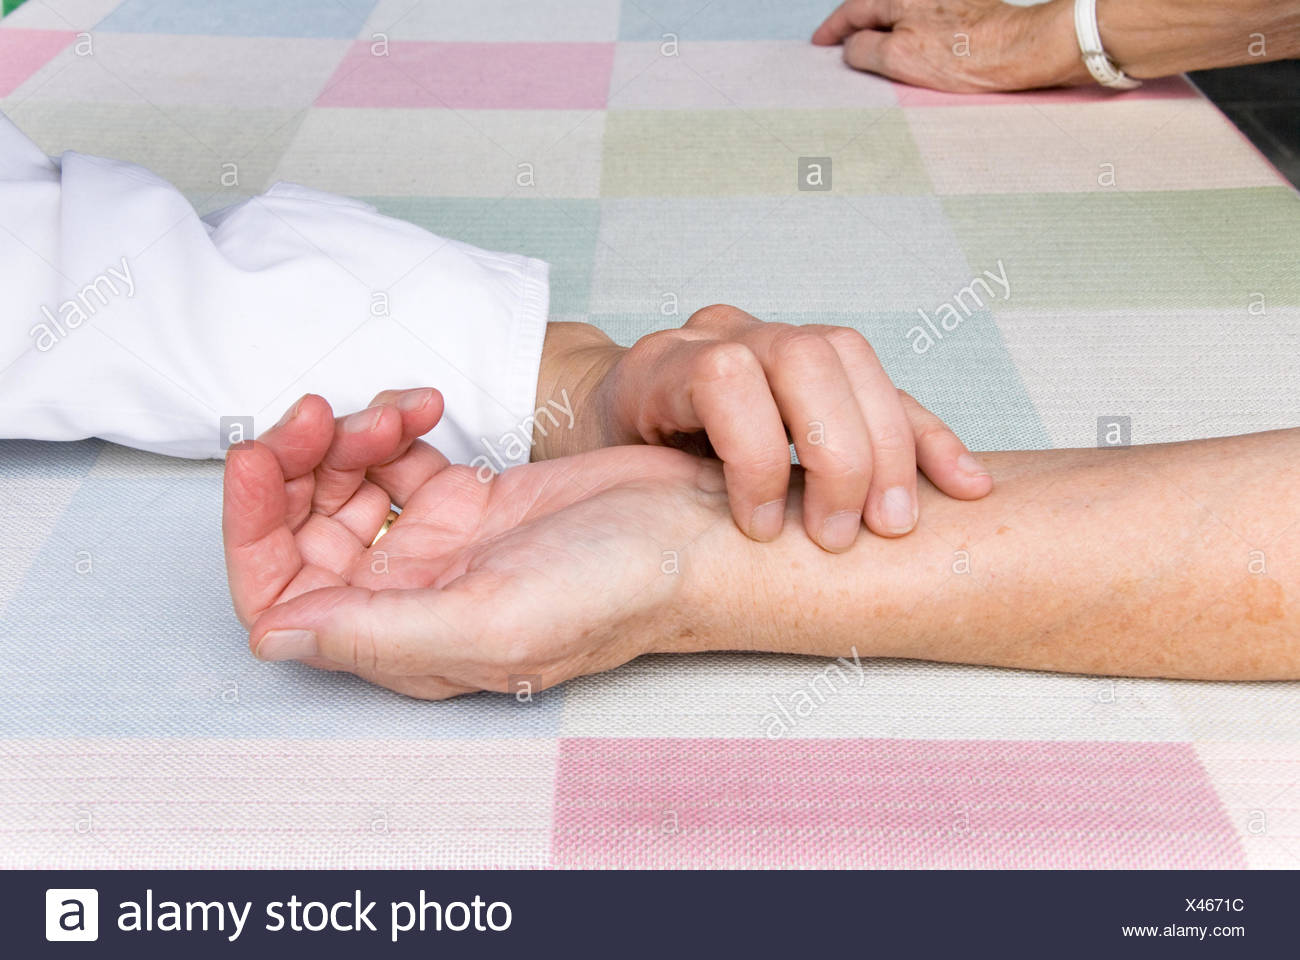 pulse senior patient - Stock Image